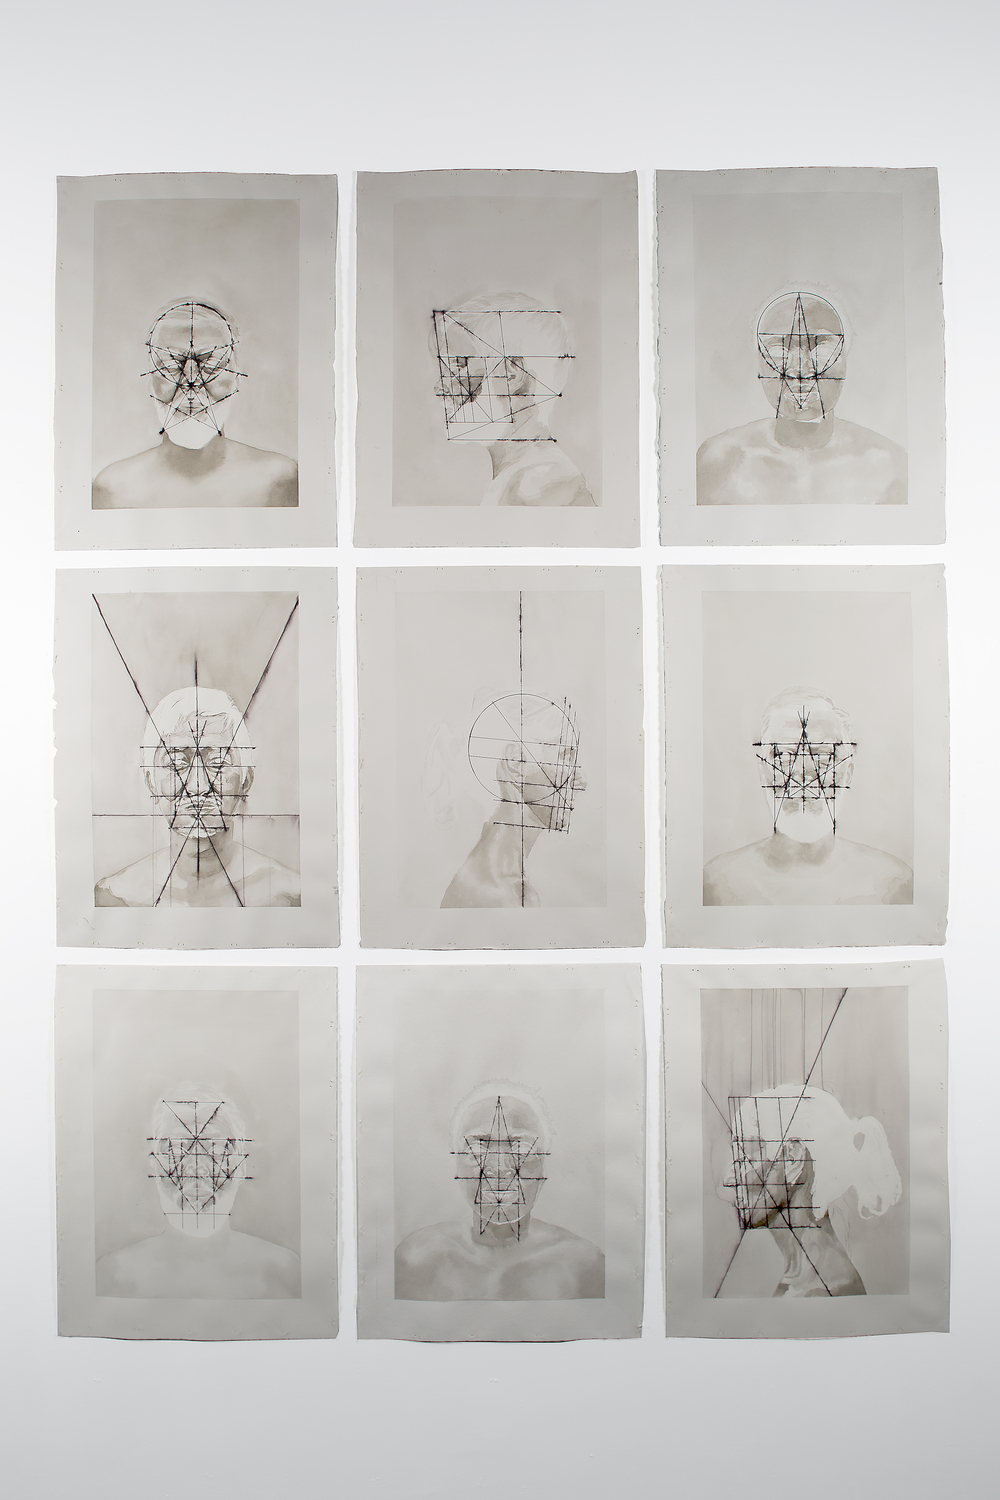 Installation of Perceptual Scans series